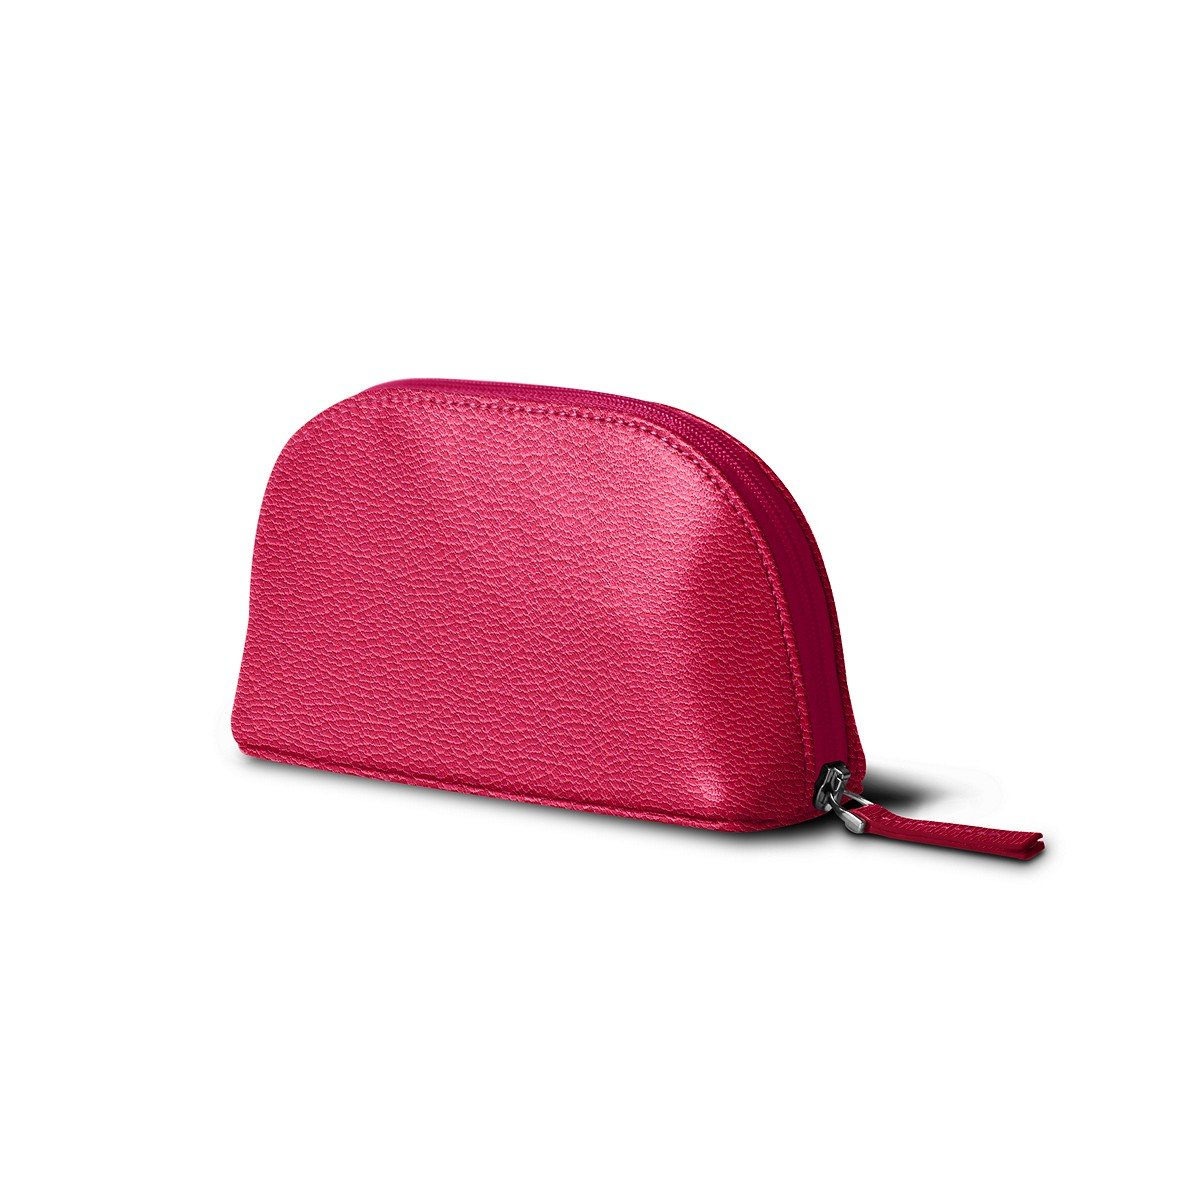 Lucrin - Makeup Bag (6.3 x 3.3 x 2.1 inches) - Fuchsia - Goat Leather